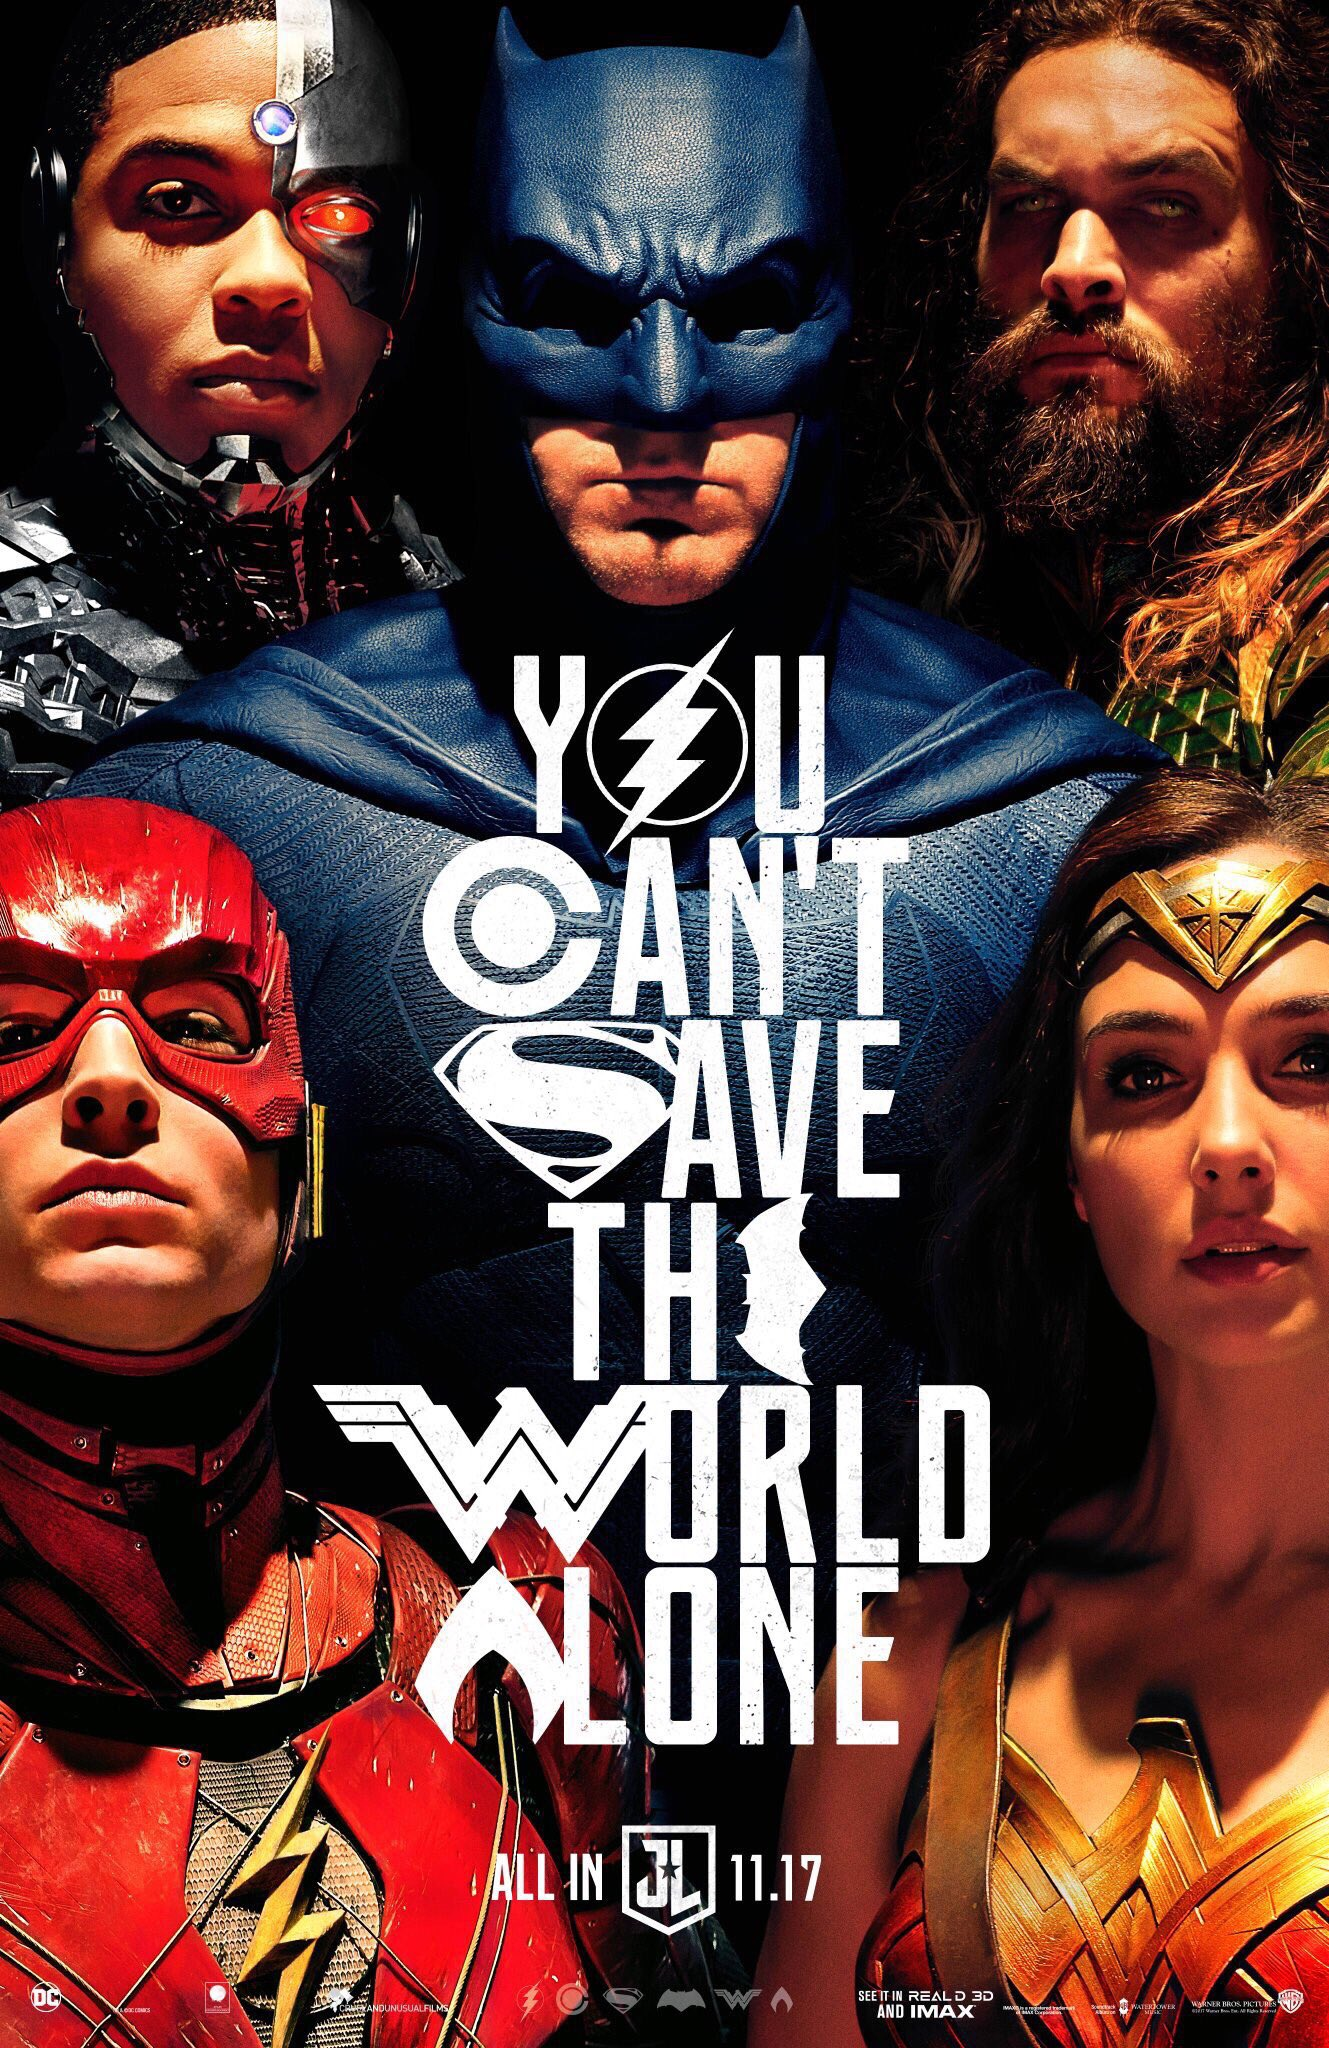 RT @SuperheroesRant: You can't save the world alone #JusticeLeague Love it ���� https://t.co/t1g8PjSvQU